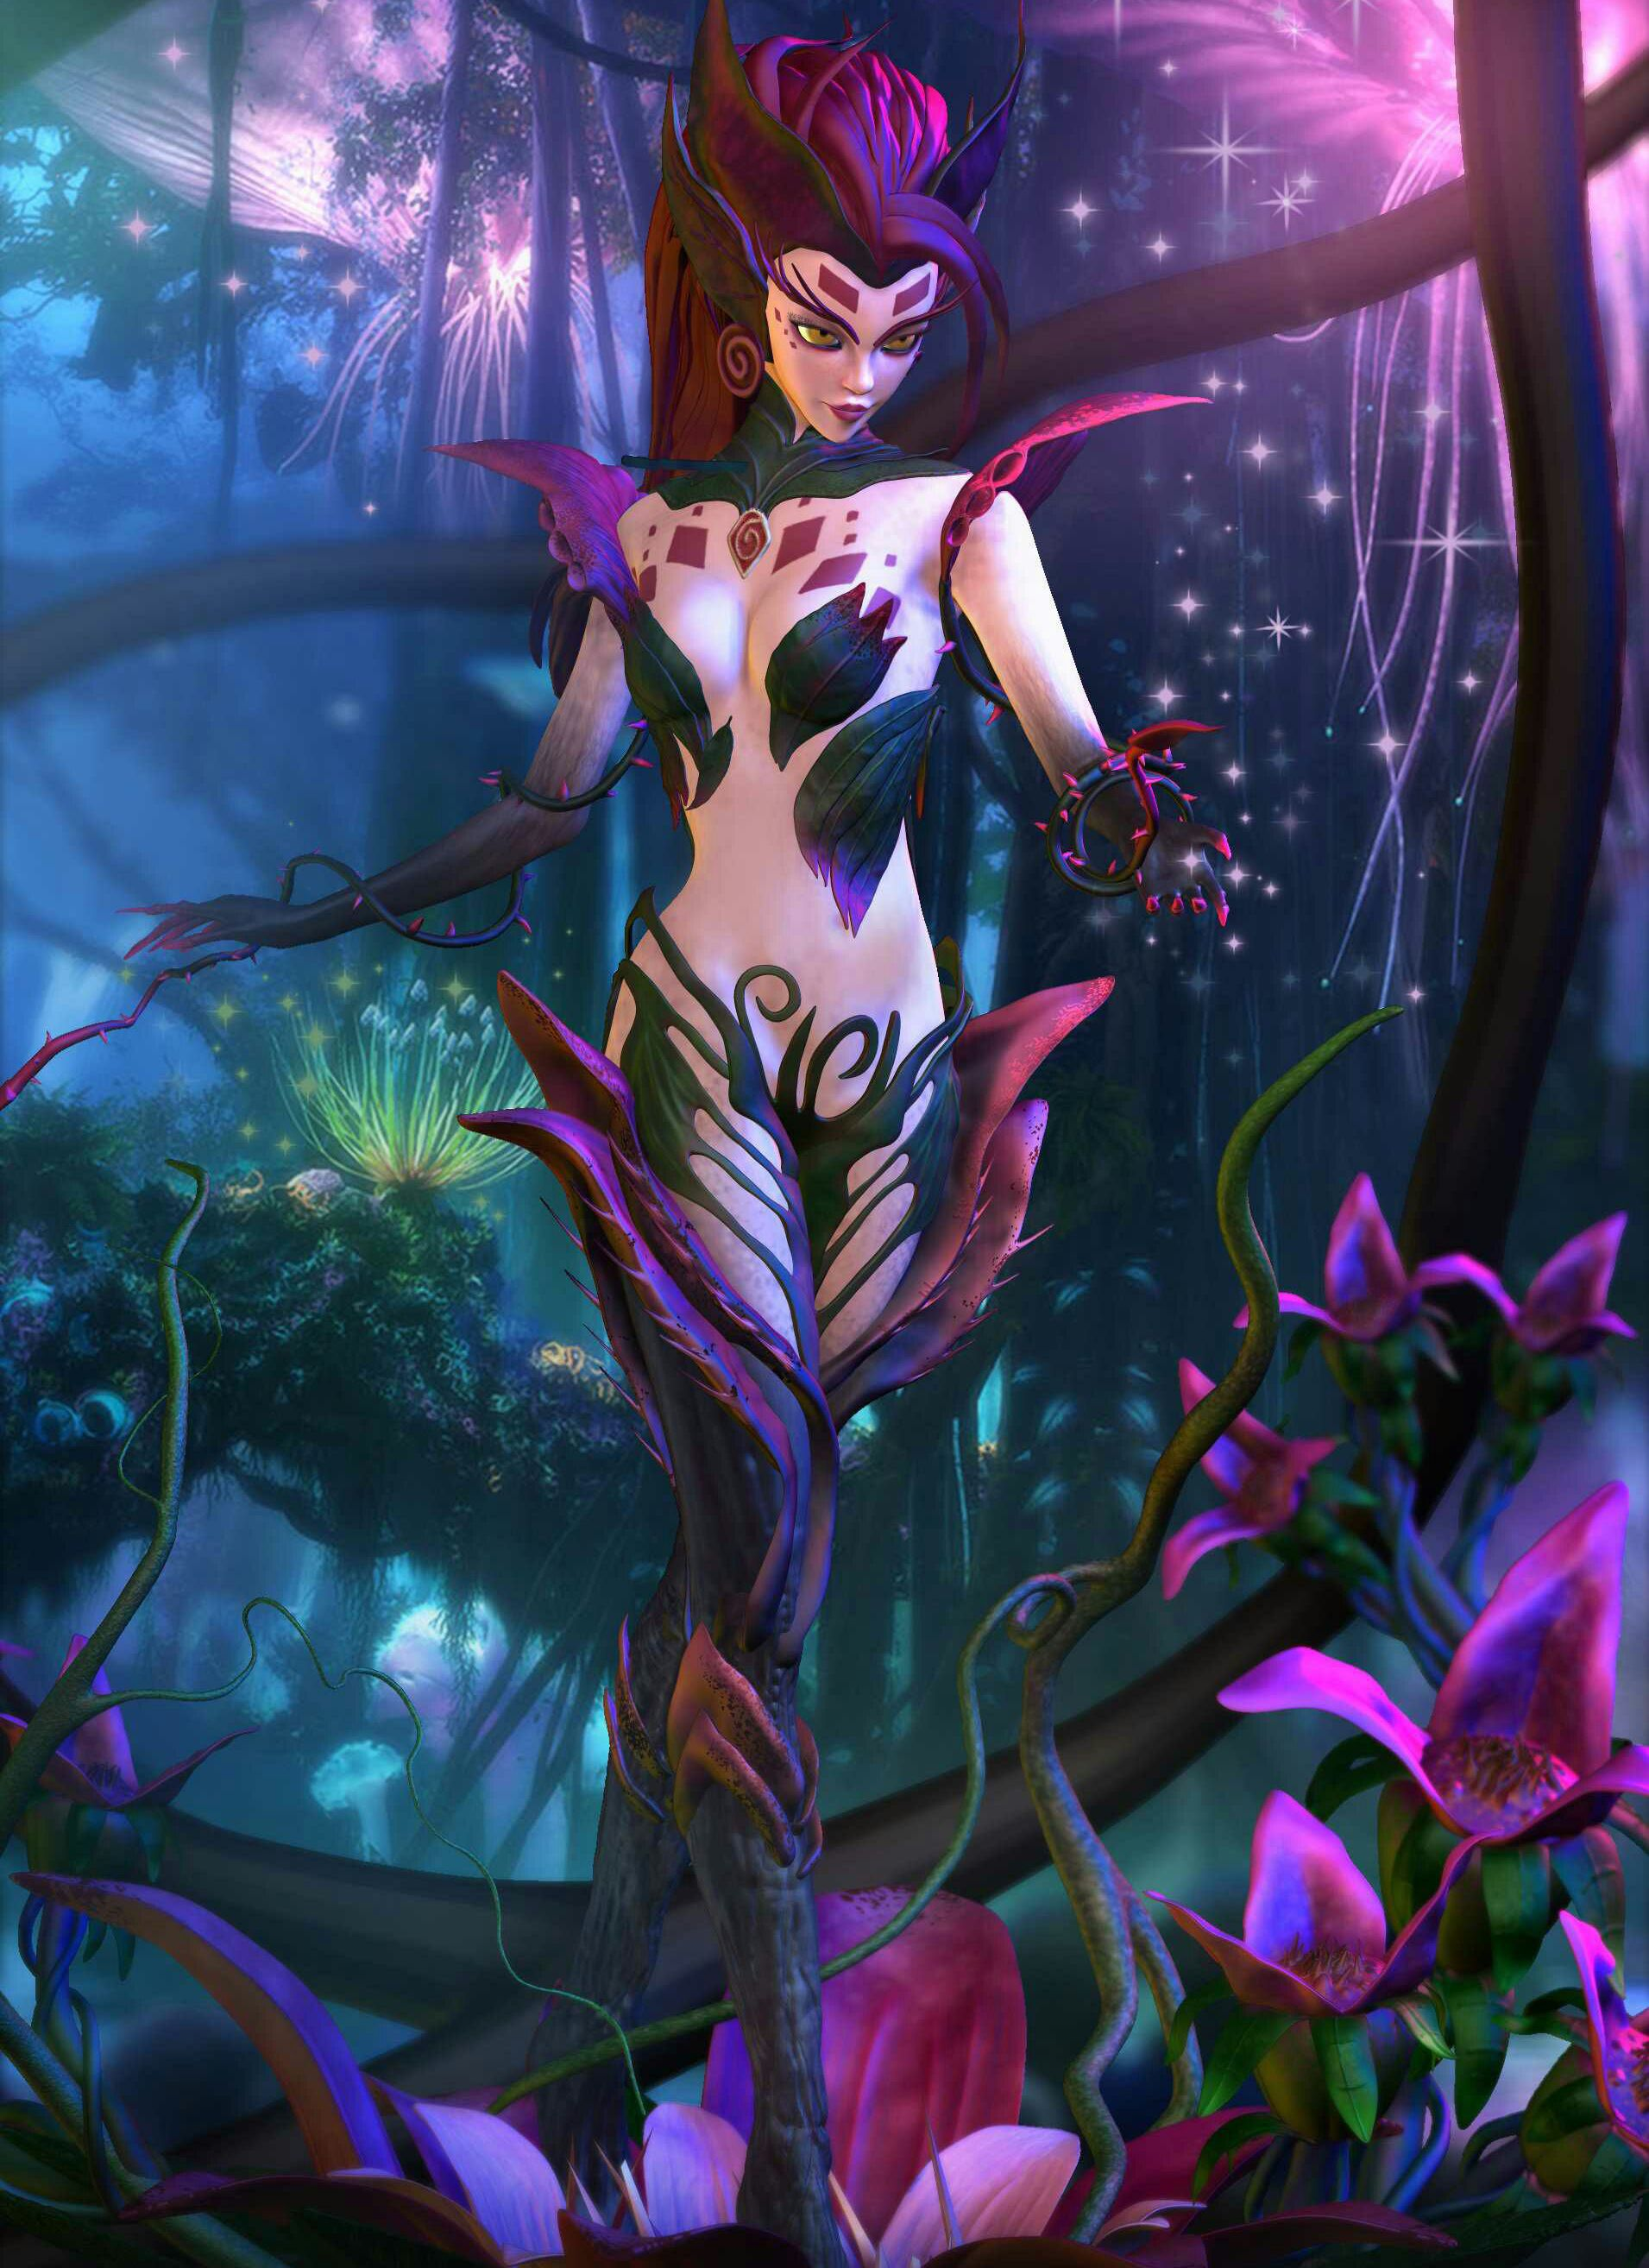 Zyra Hd Wallpapers 1920x1080 League Of Legends Coven zyra league of legends wallpaper